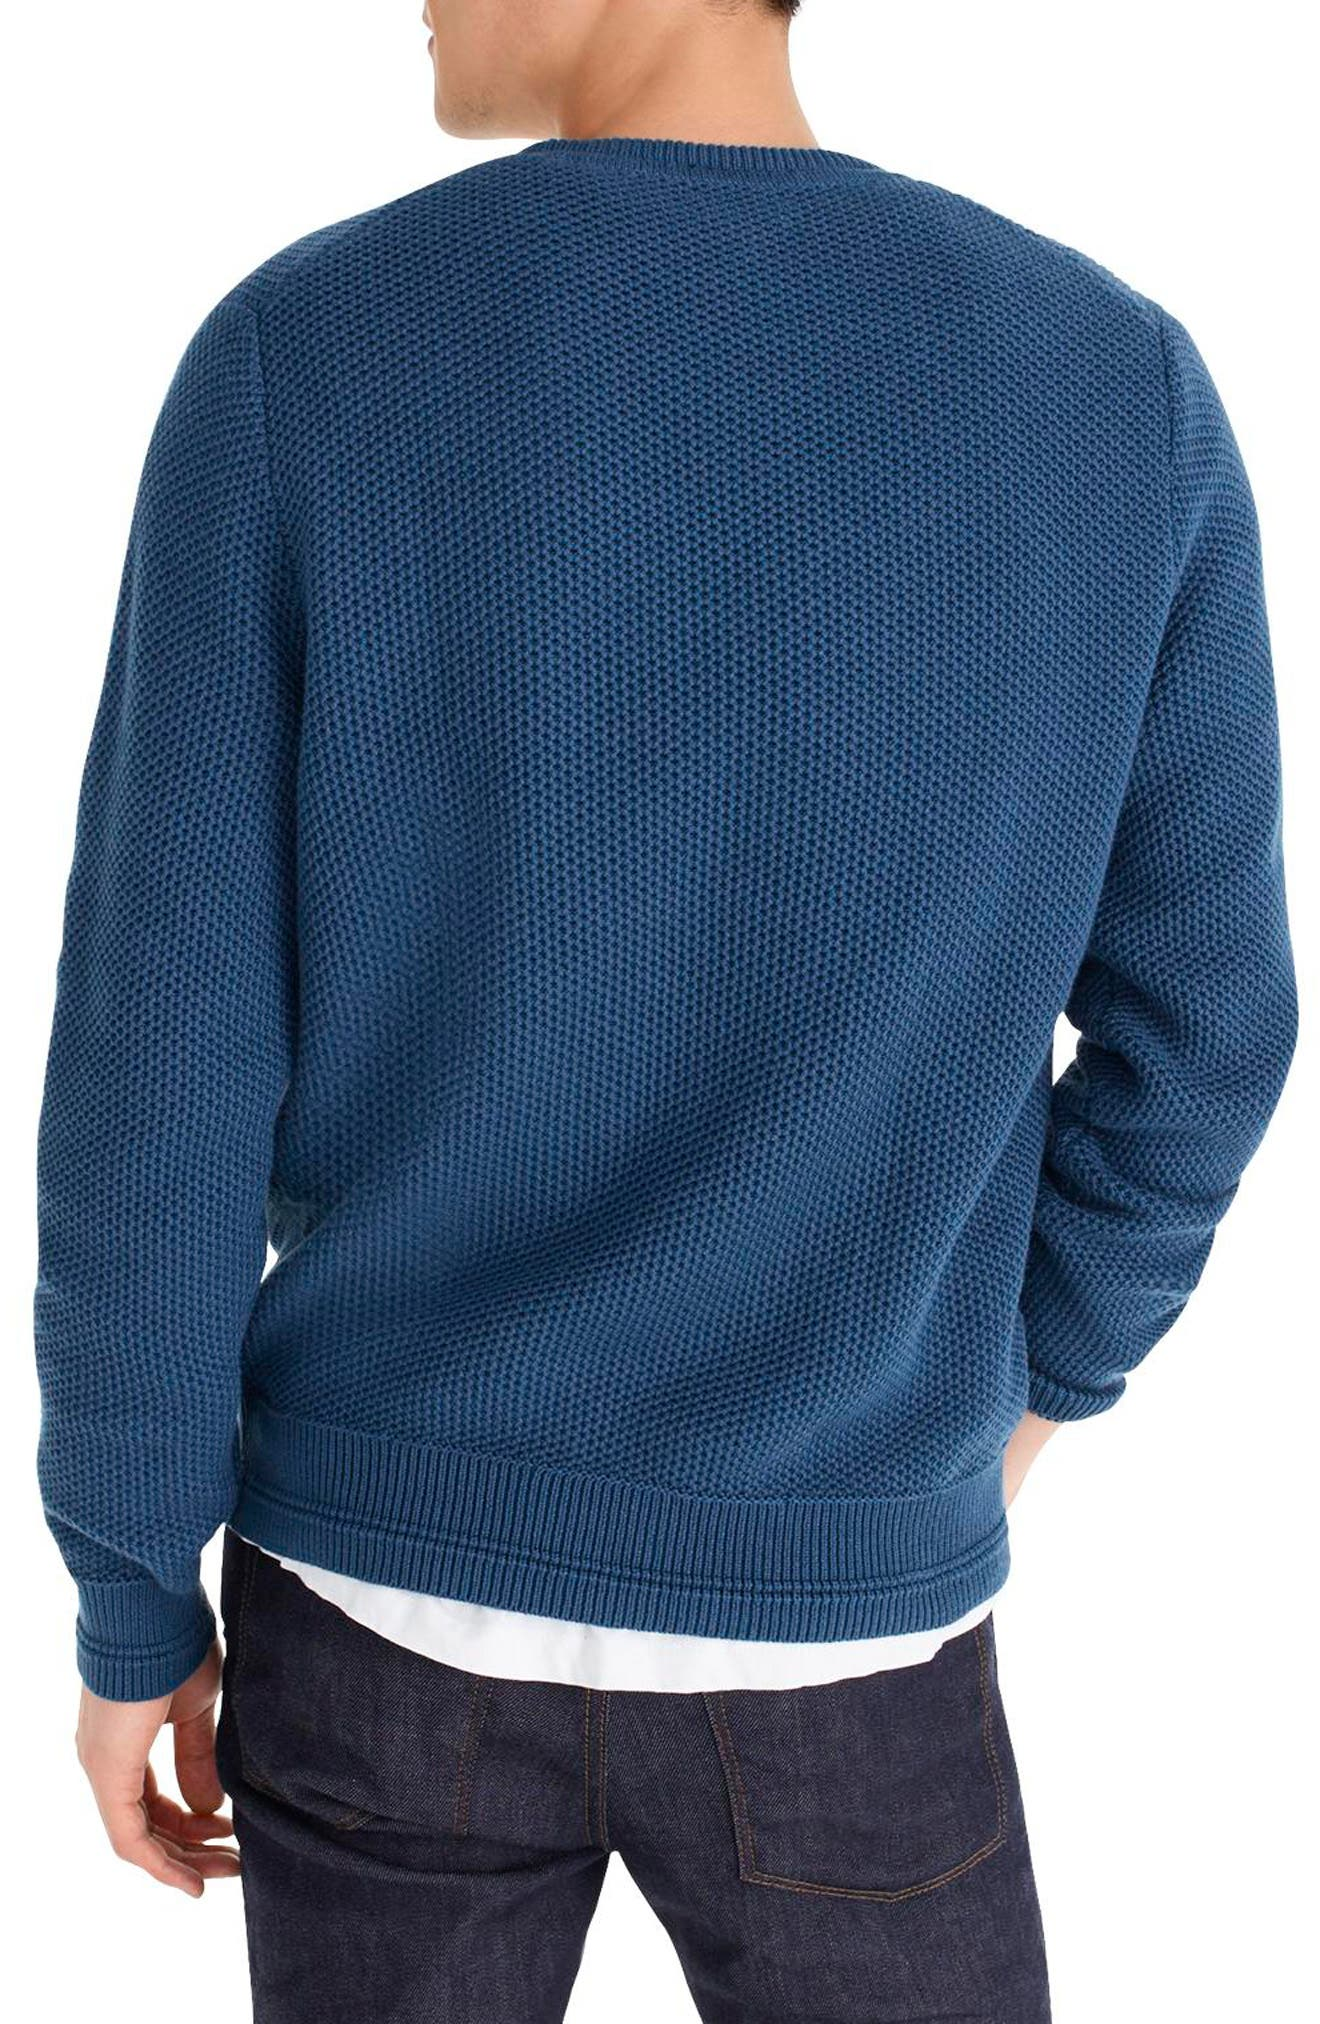 Honeycomb Cotton Crewneck Sweater,                             Alternate thumbnail 2, color,                             400